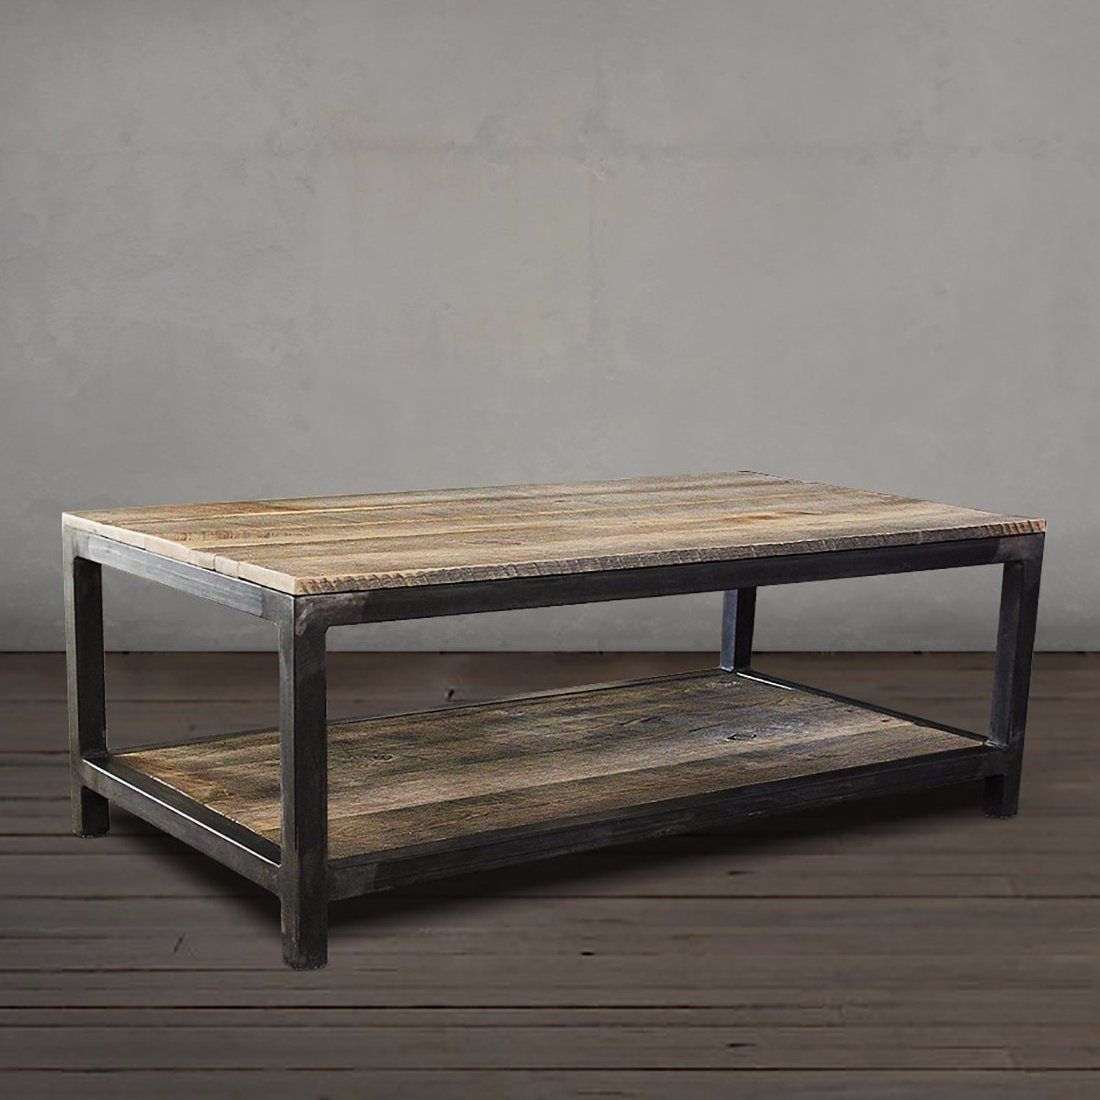 Metal Coffee Table Reclaimed Wood And Metal Coffee Table Two Tier In 2019 Home